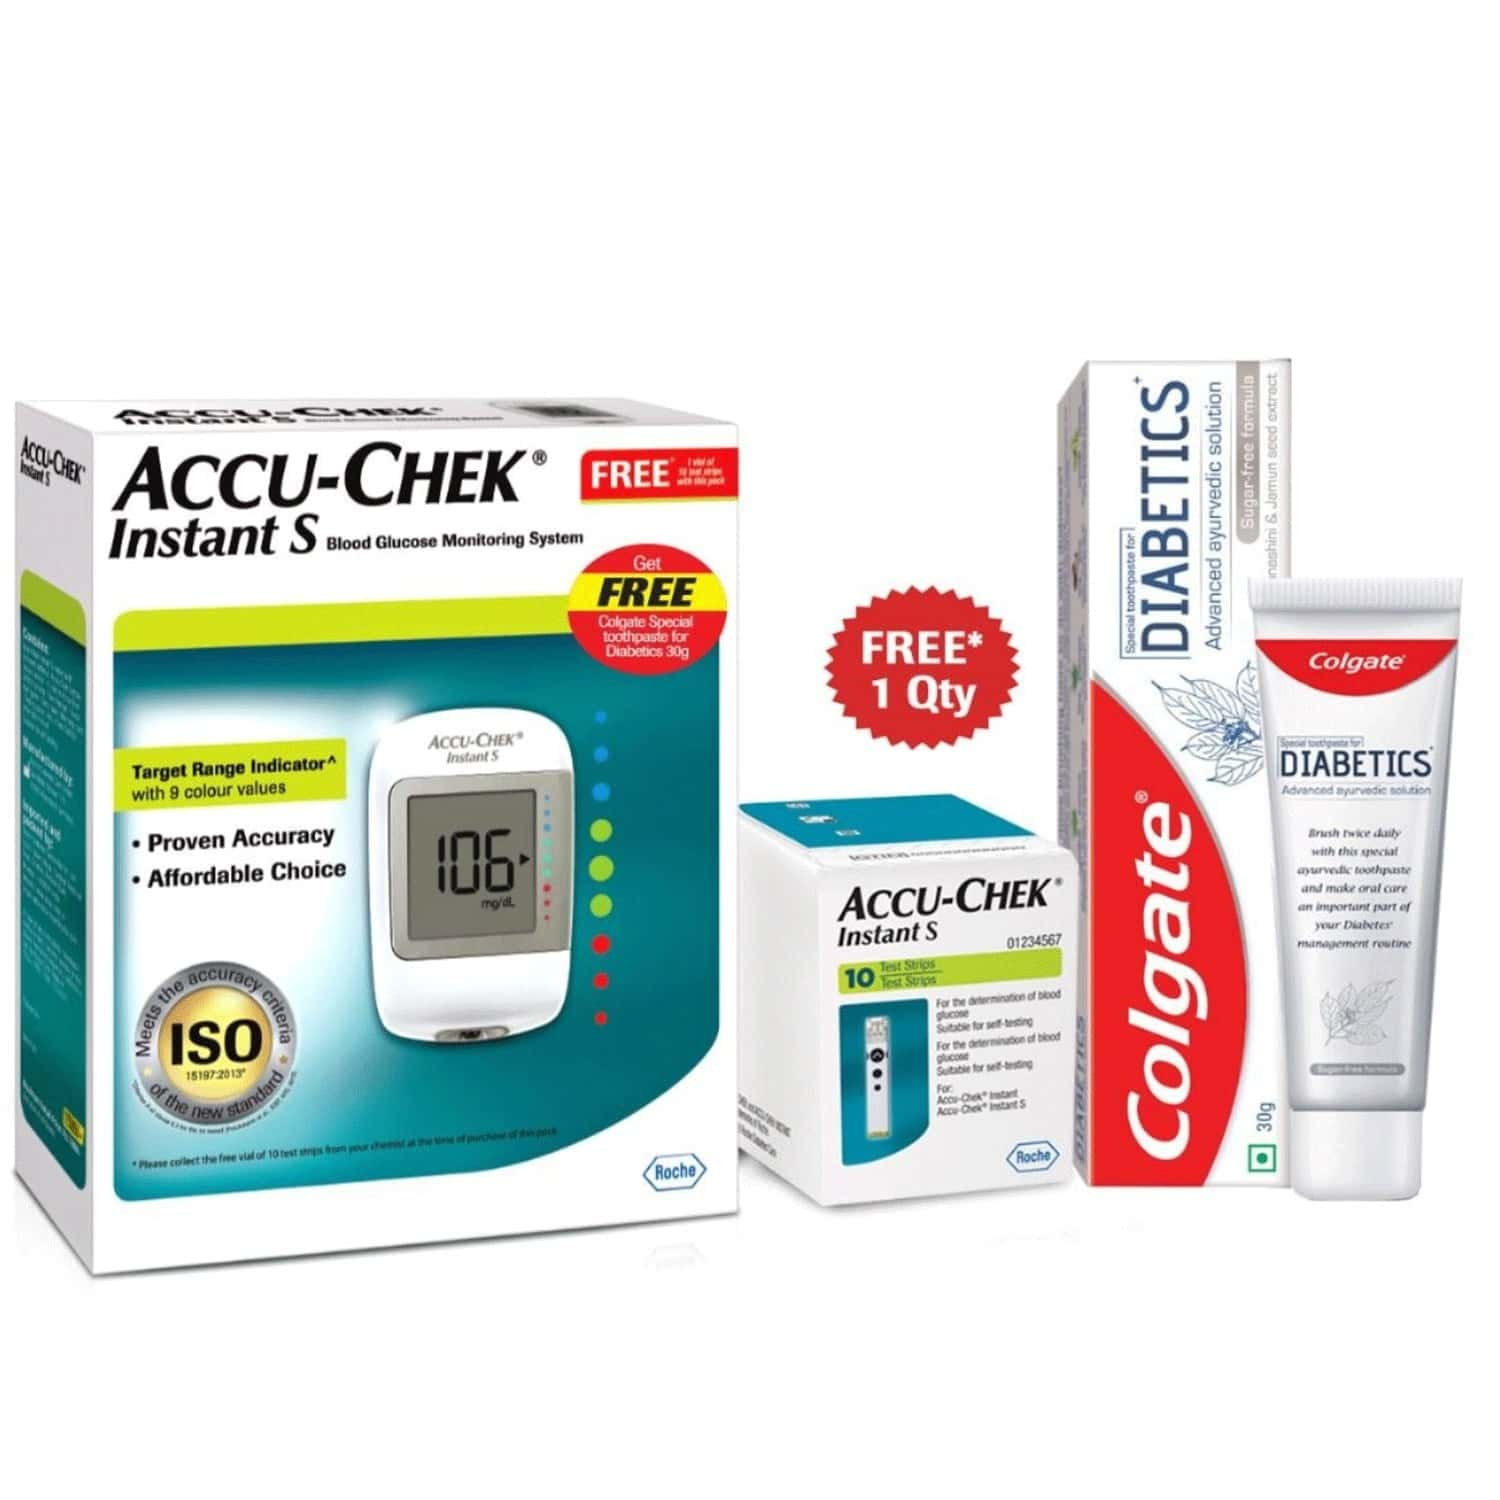 Accu-chek Instant S Glucometer With 10 Strips With Free 30gm Pack Of Colgate Diabetics Toothpaste